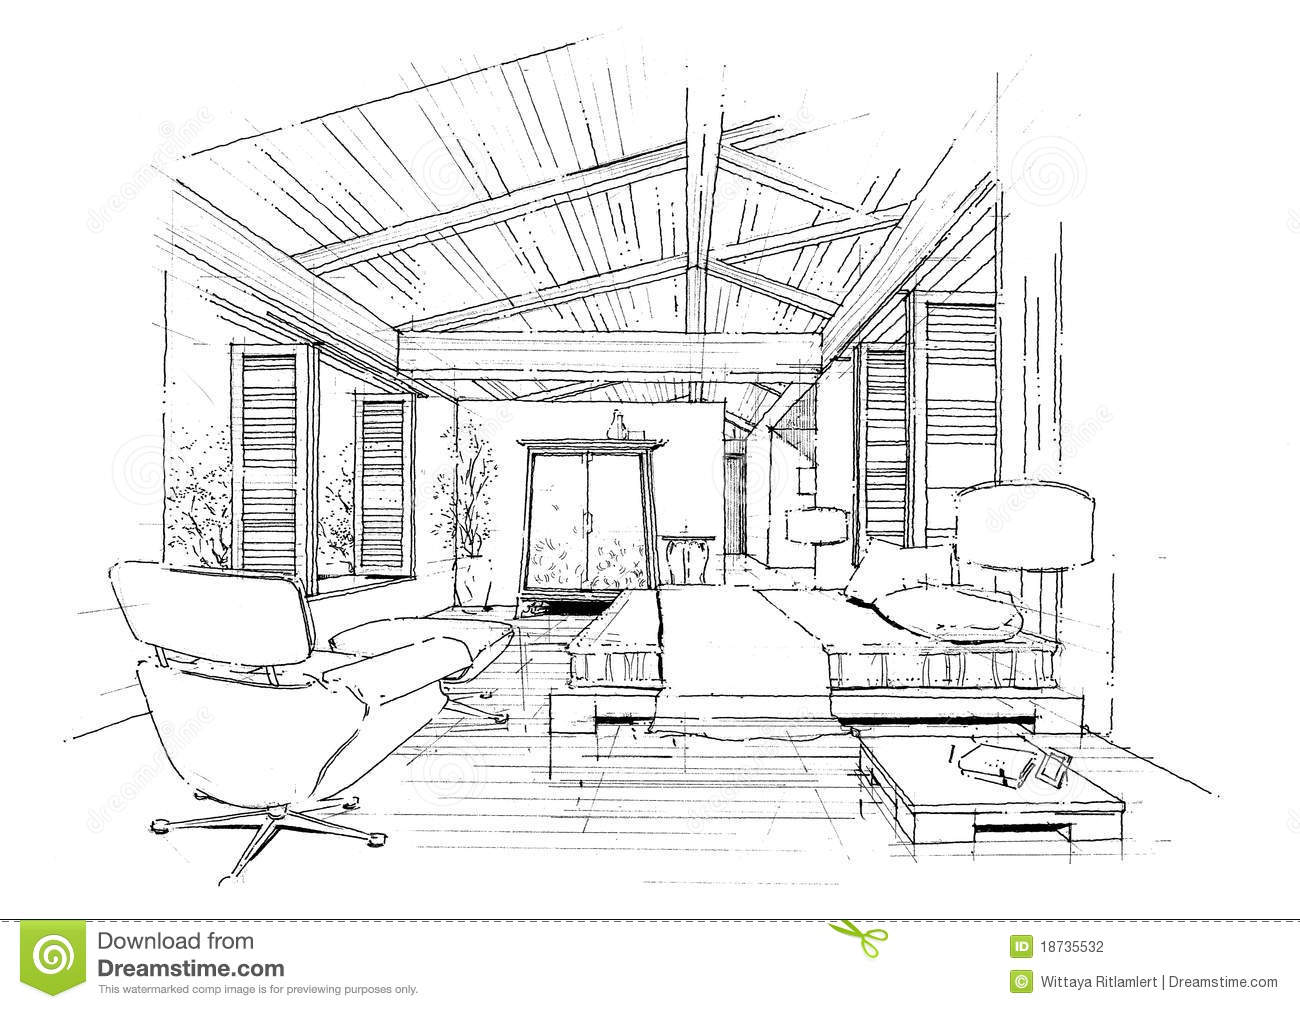 Interior architecture construction landscape sketc stock illustration illustration of for Construction drawings and details for interiors